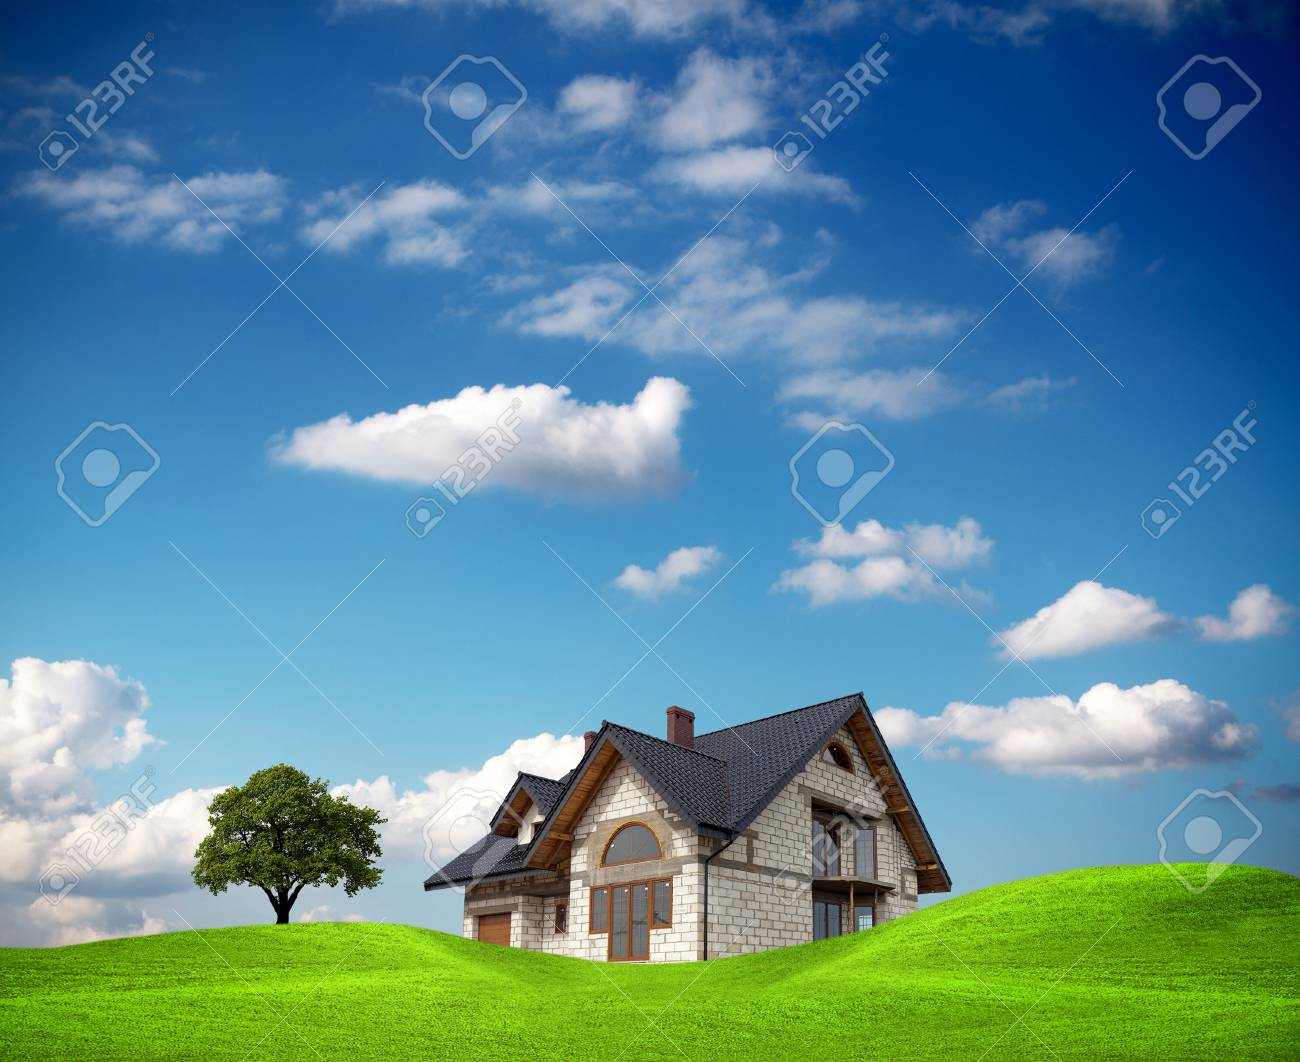 The investment in environmental site Stock Photo - 9571312